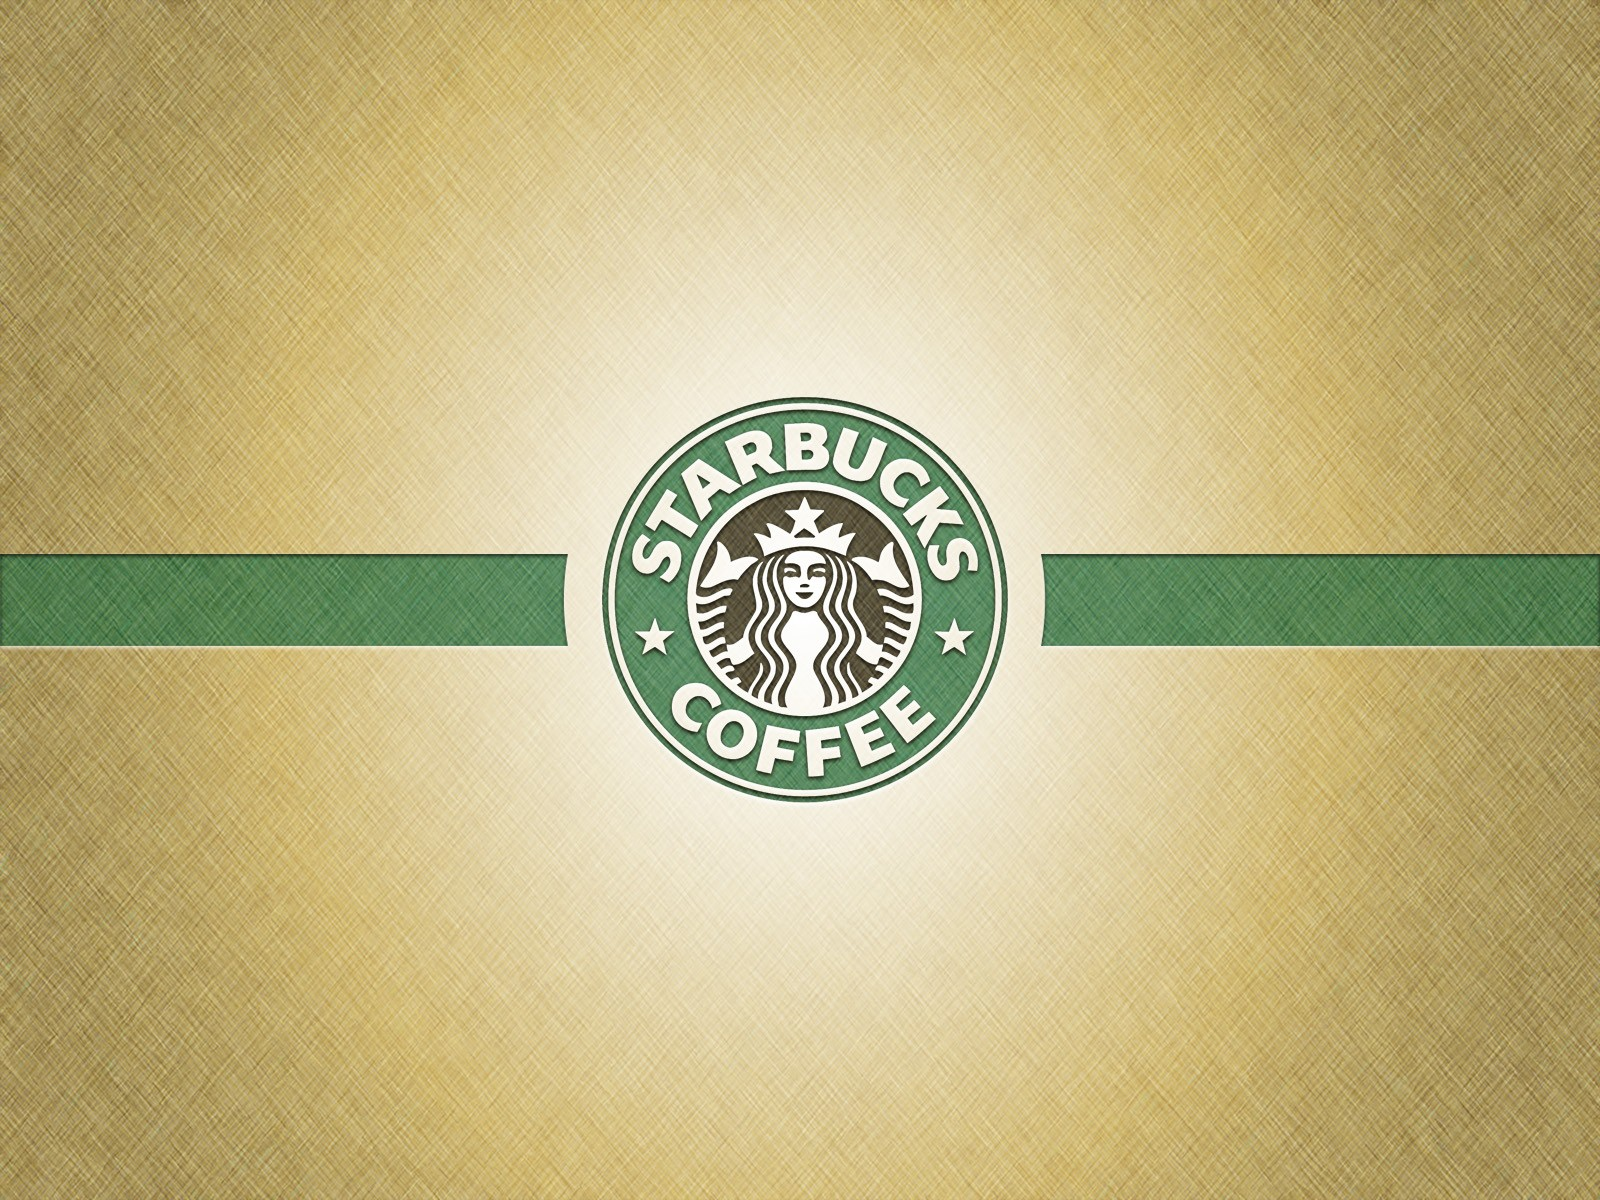 Logo-wallpapers-Starbucks Hd -wallpaper